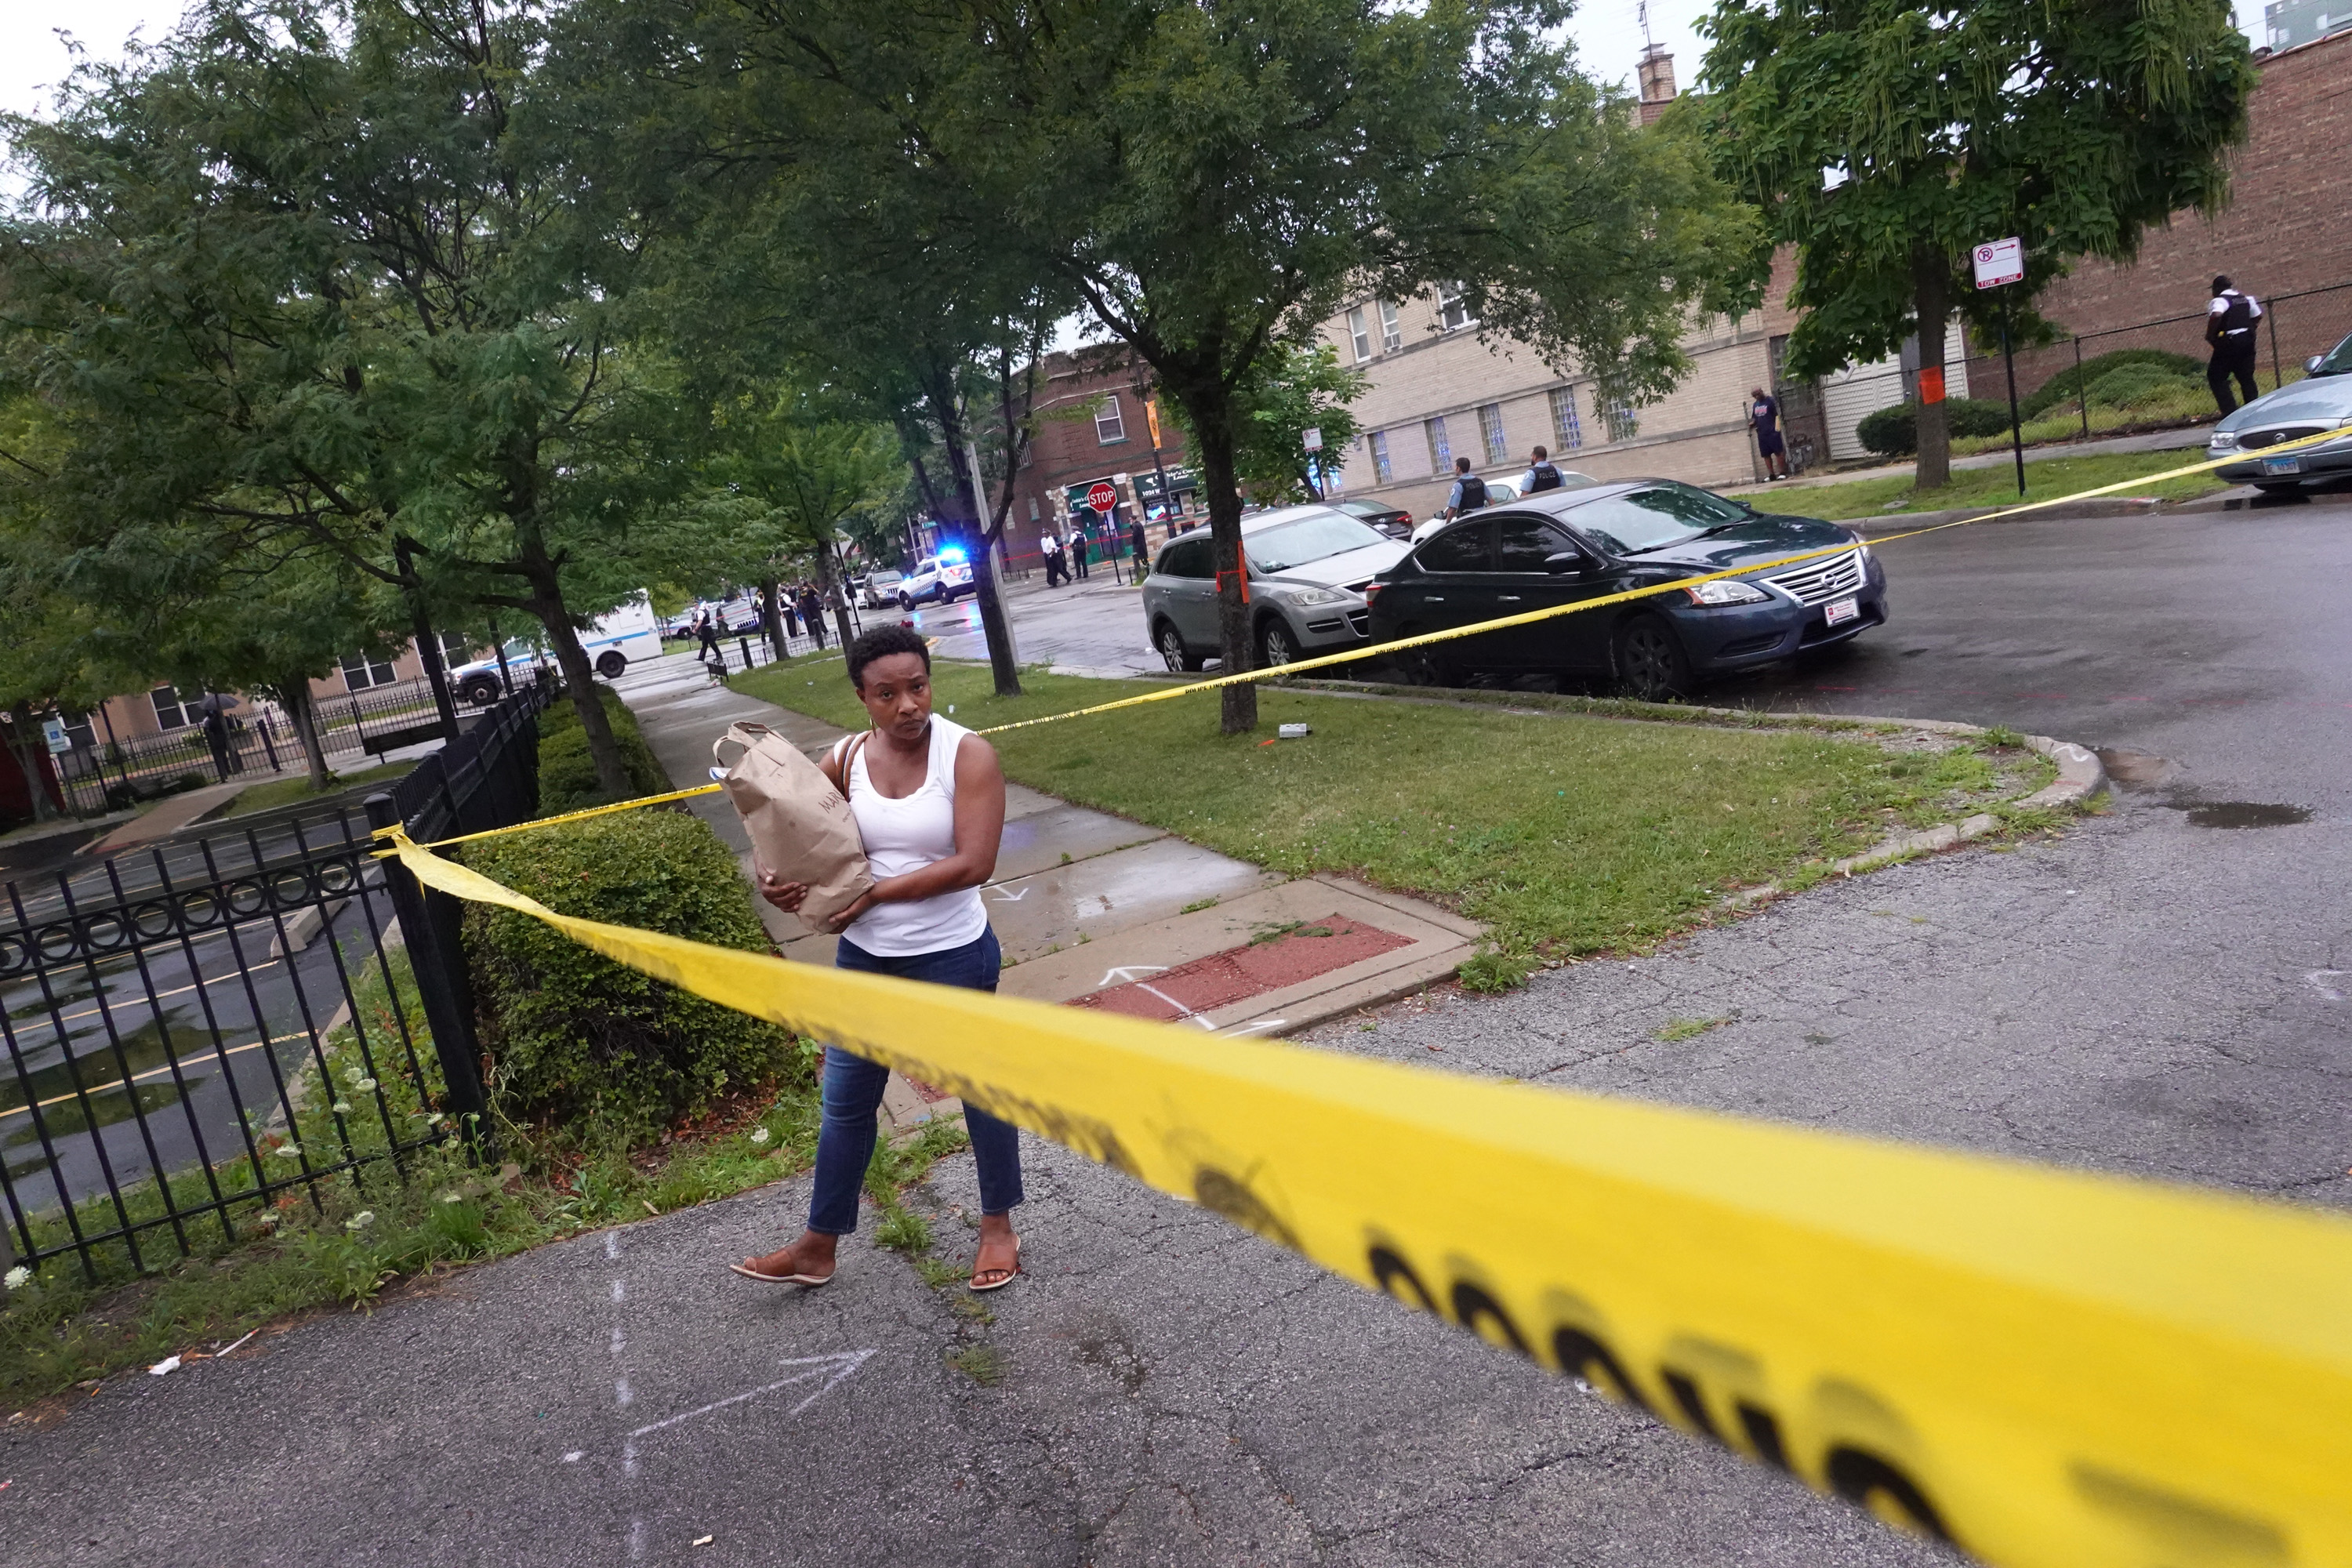 CHICAGO, ILLINOIS - JULY 21: A resident stands inside of police tape as Chicago police secure the scene of a shooting in the Auburn Gresham neighborhood on July 21, 2020 in Chicago, Illinois. At least 14 people were transported to area hospitals after several gunmen opened fire on mourners standing outside of a funeral home. More than 2000 people have been shot and more than 400 have been murdered in Chicago so far this year. (Photo by Scott Olson/Getty Images)